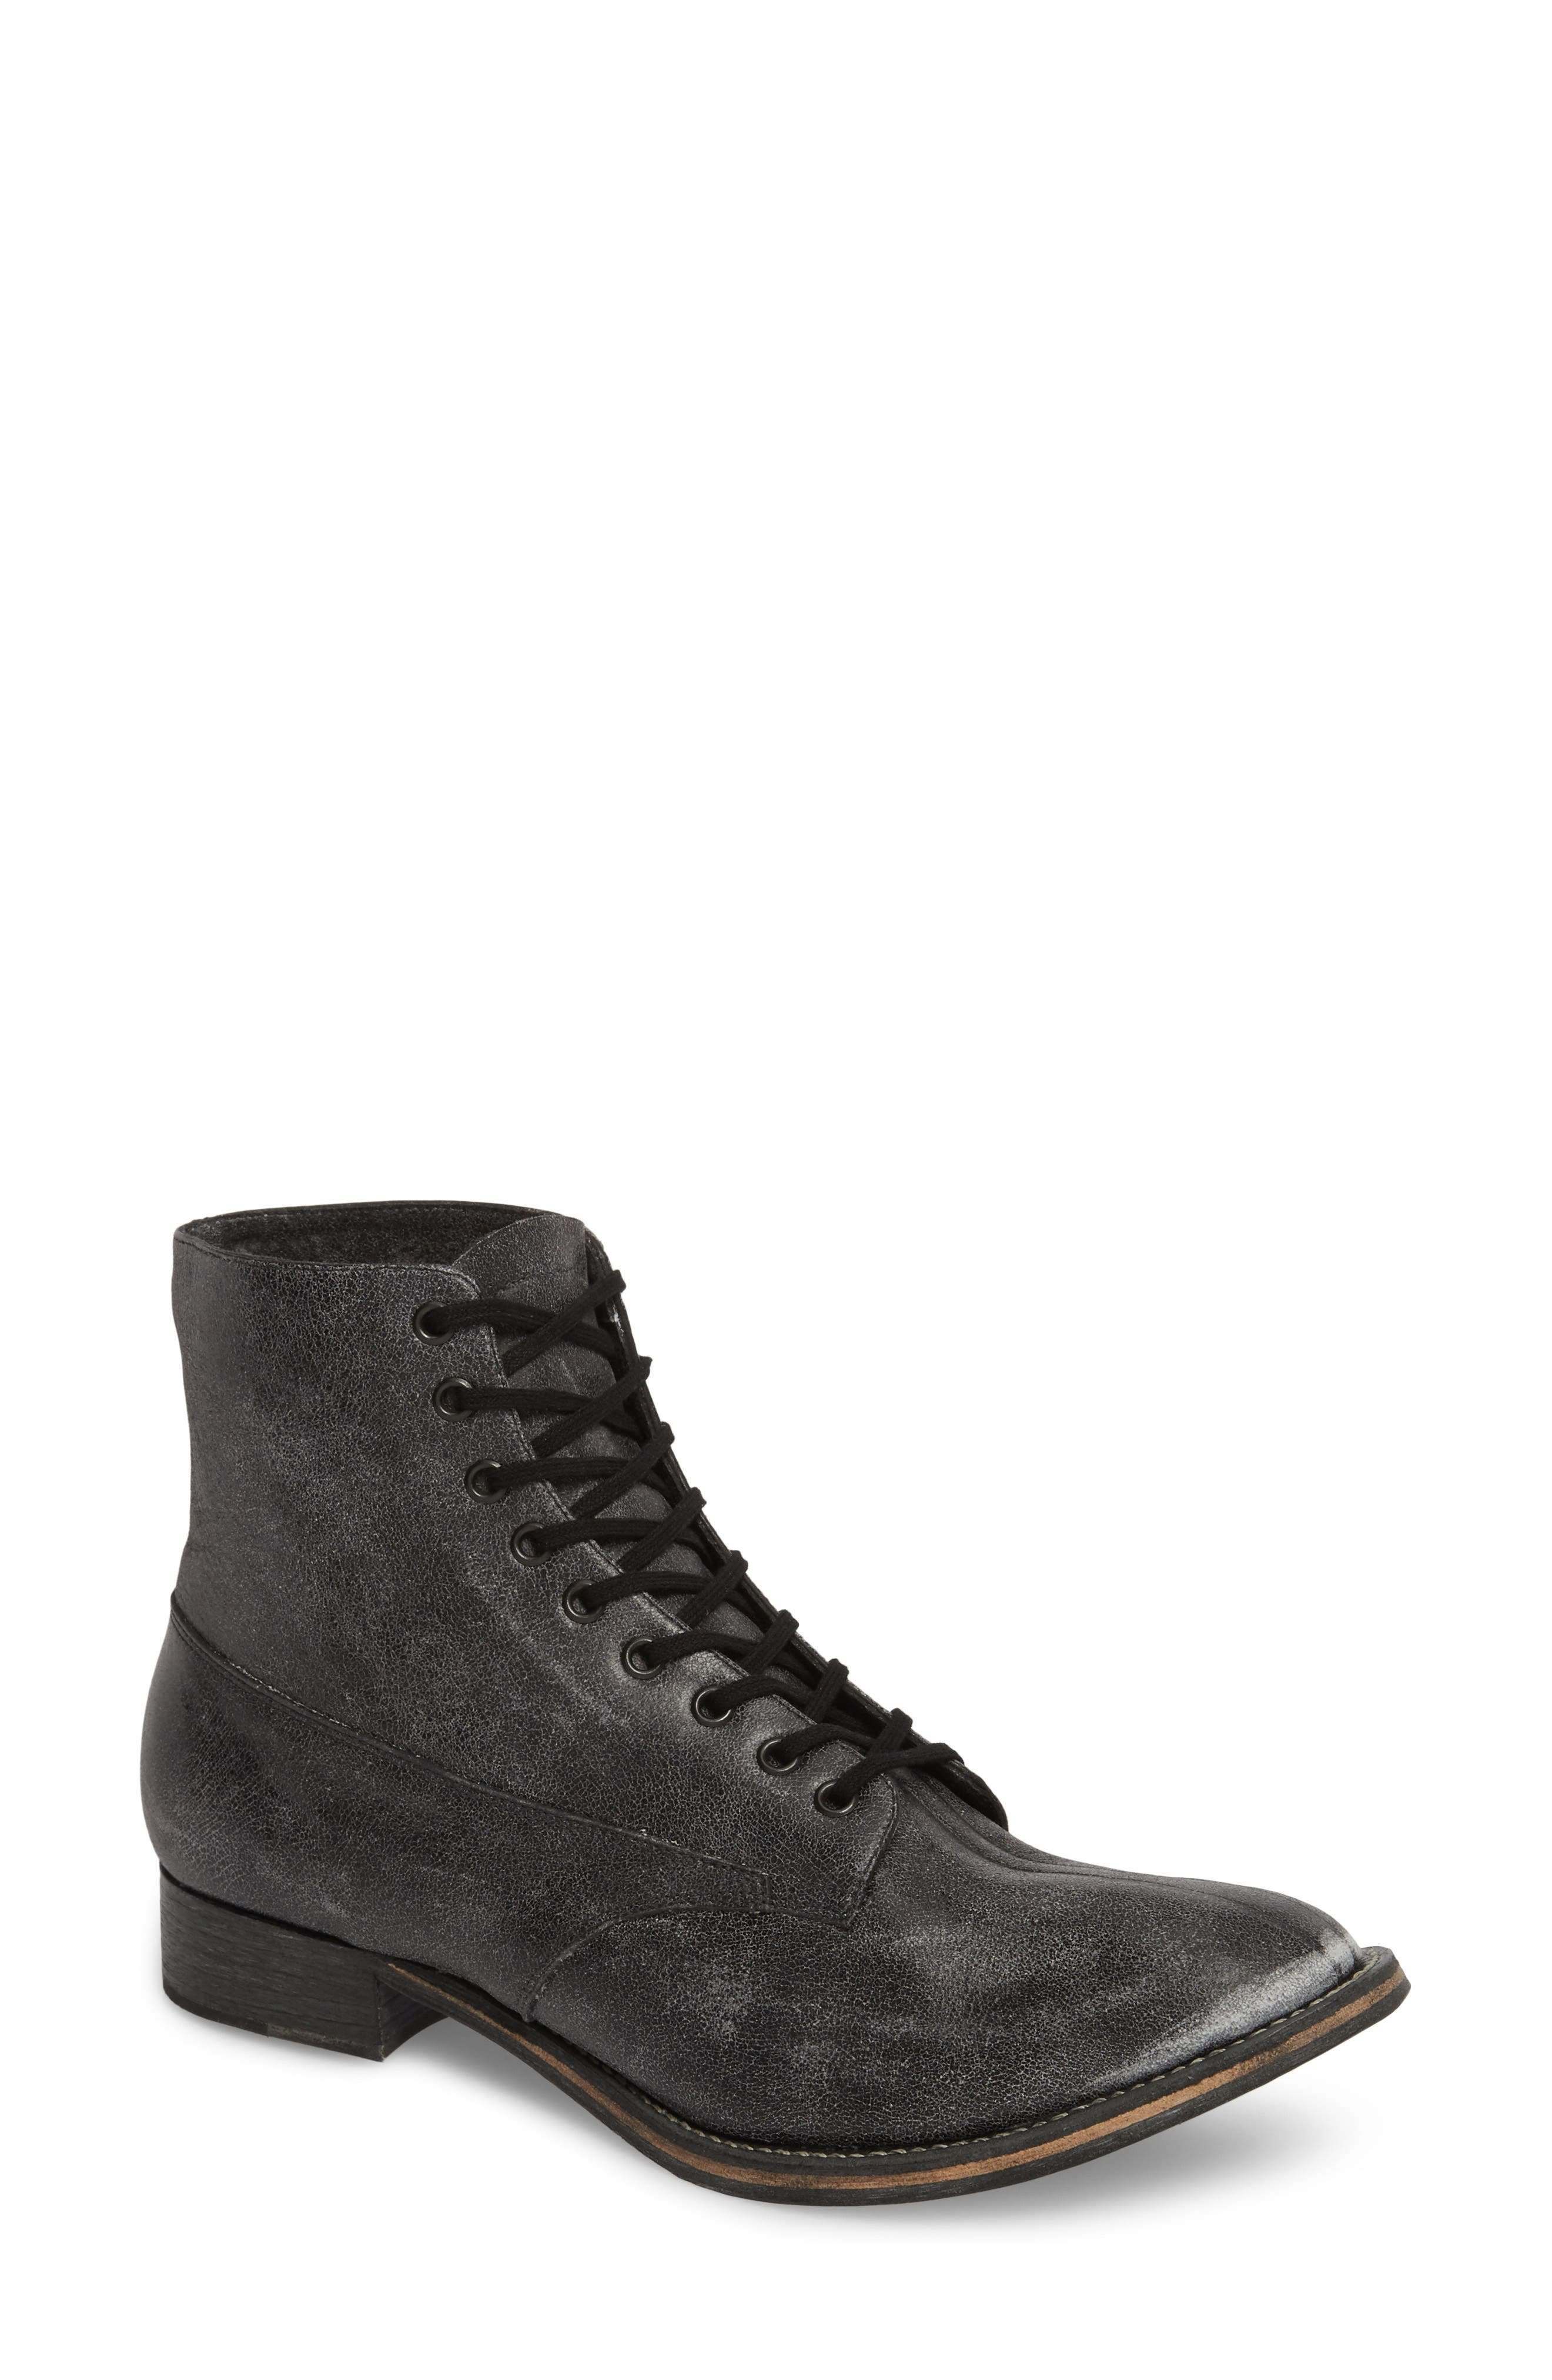 Boxcar Lace-Up Boot,                         Main,                         color, BLACK